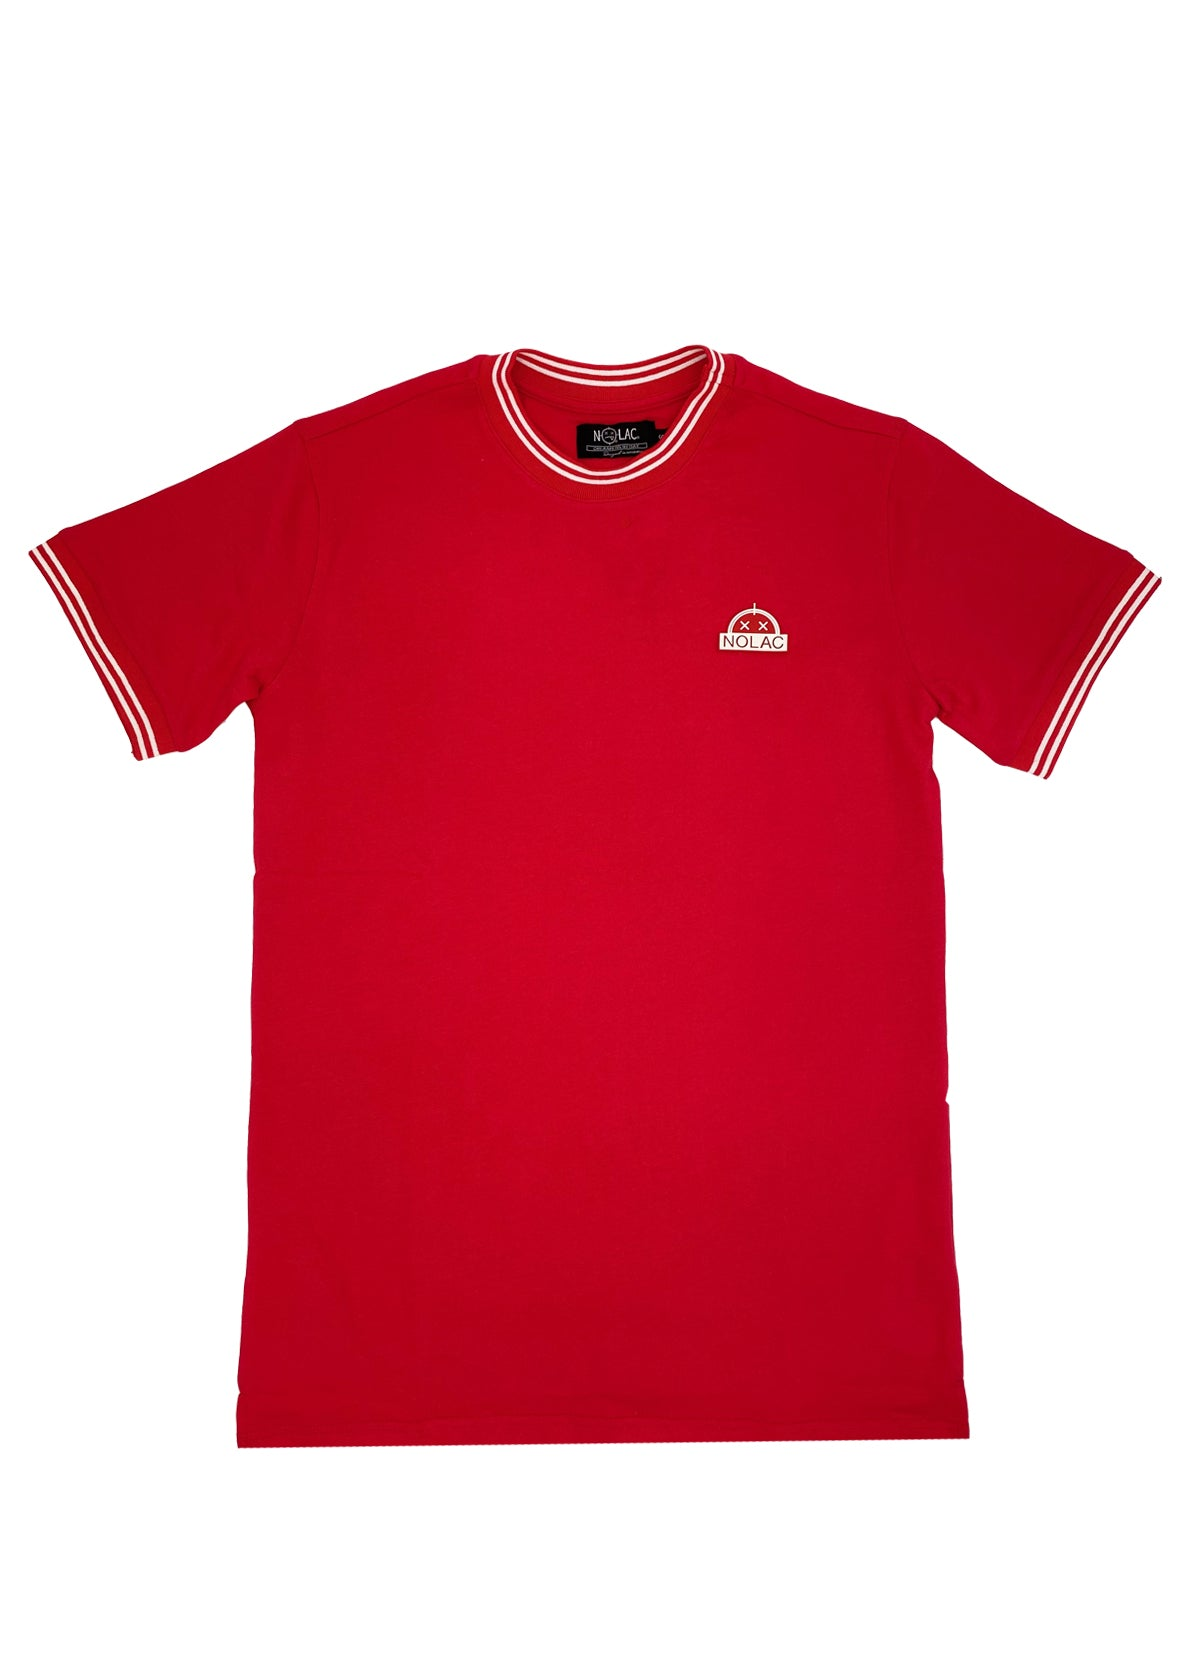 LoopBack Ribbed T (Red)